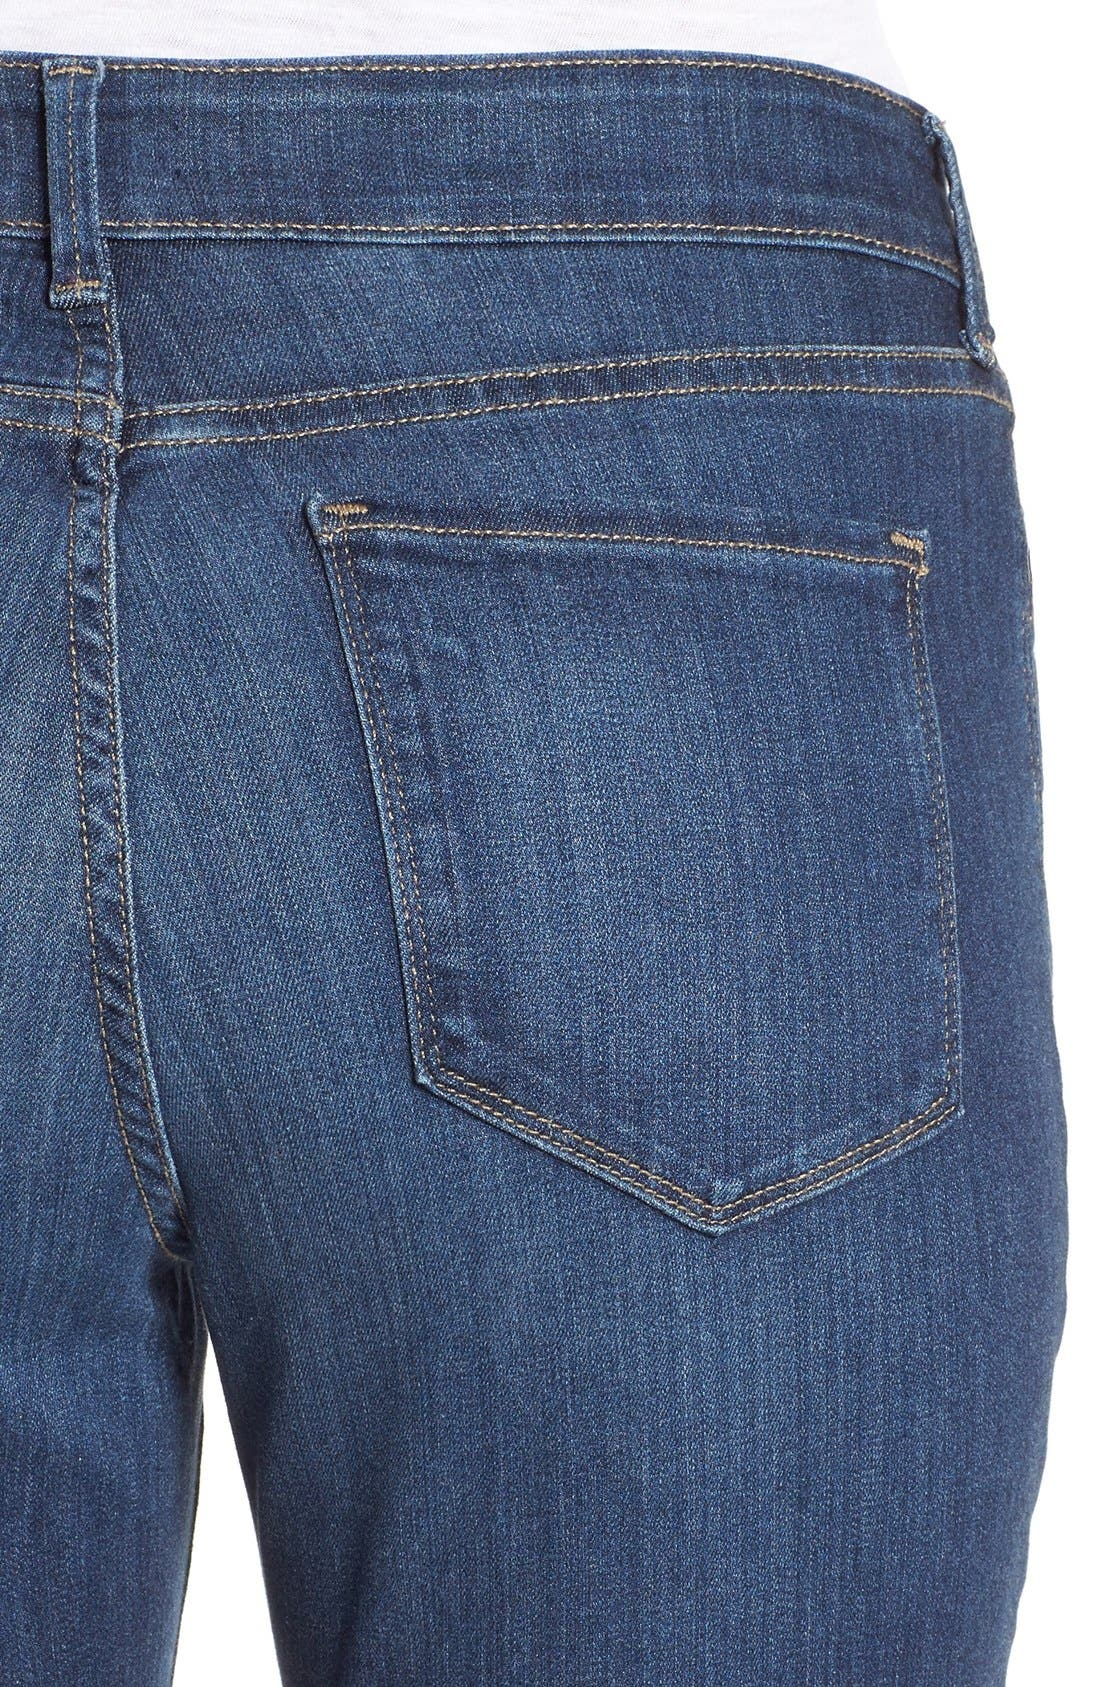 'Ami' Stretch Skinny Jeans,                             Alternate thumbnail 2, color,                             428